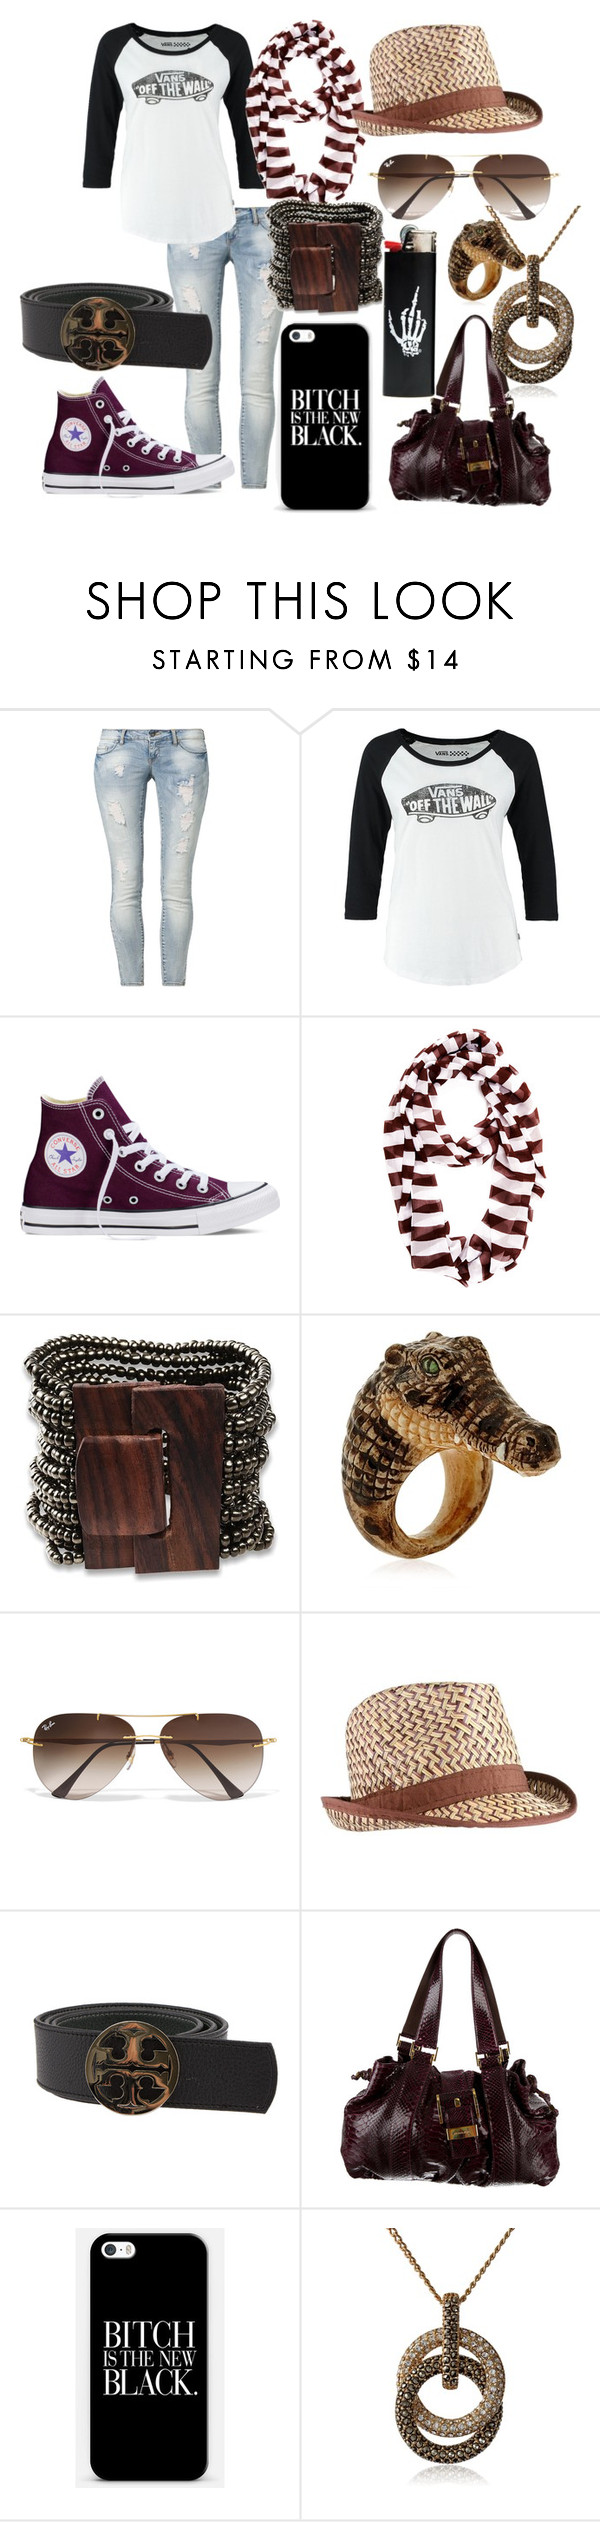 """""""Untitled #182"""" by alaina-dixon on Polyvore featuring ONLY, Vans, Converse, Henri Bendel, Nach, Ray-Ban, Tory Burch, Michael Kors, Judith Jack and women's clothing"""